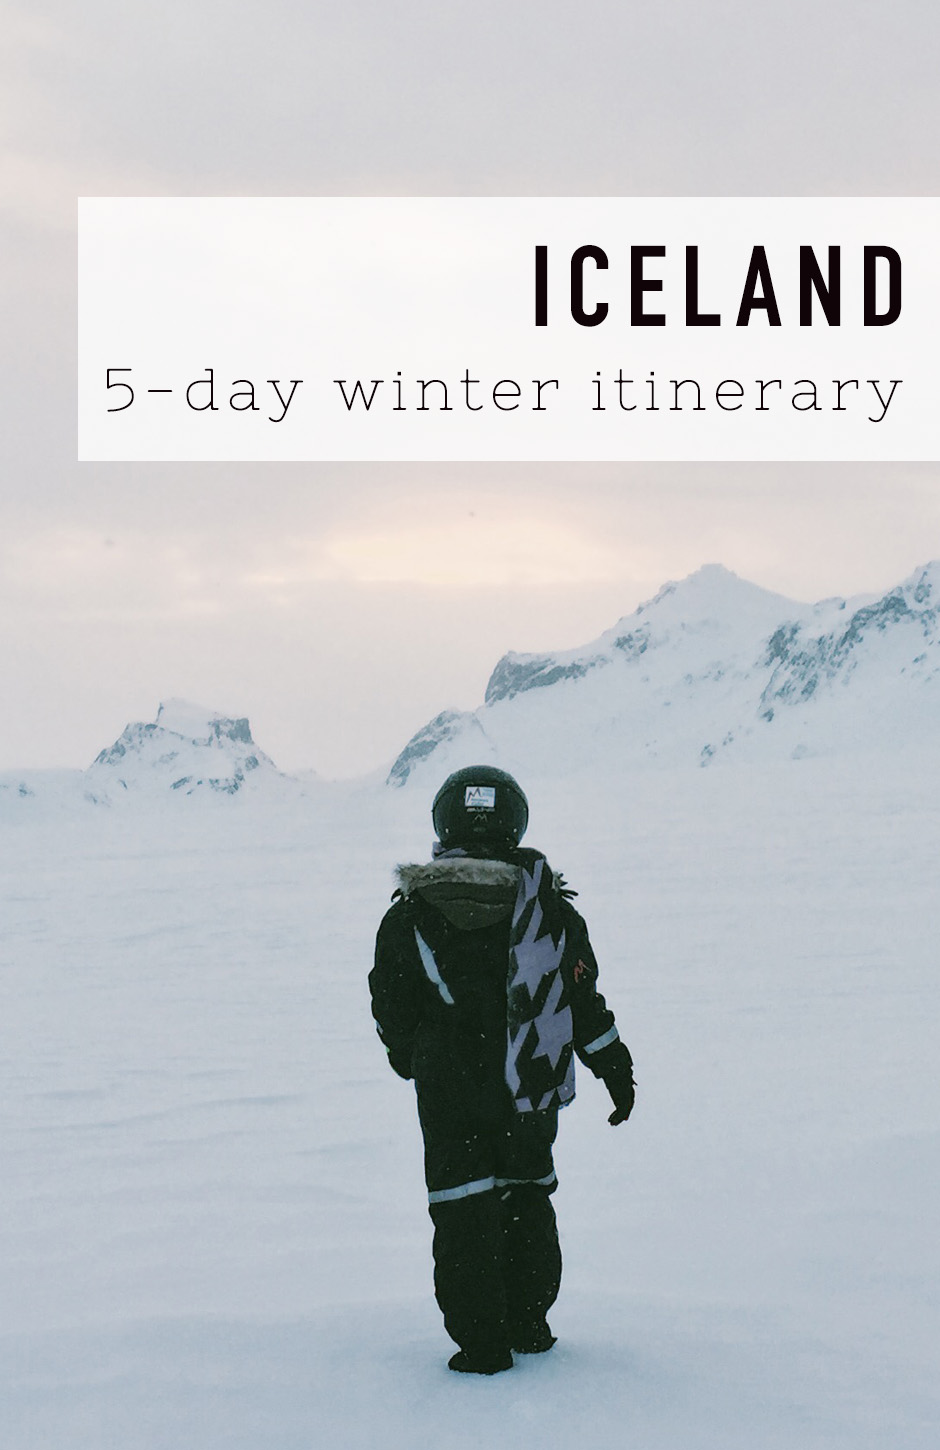 5-day Iceland itinerary in winter - How to get the best out of five days in Iceland